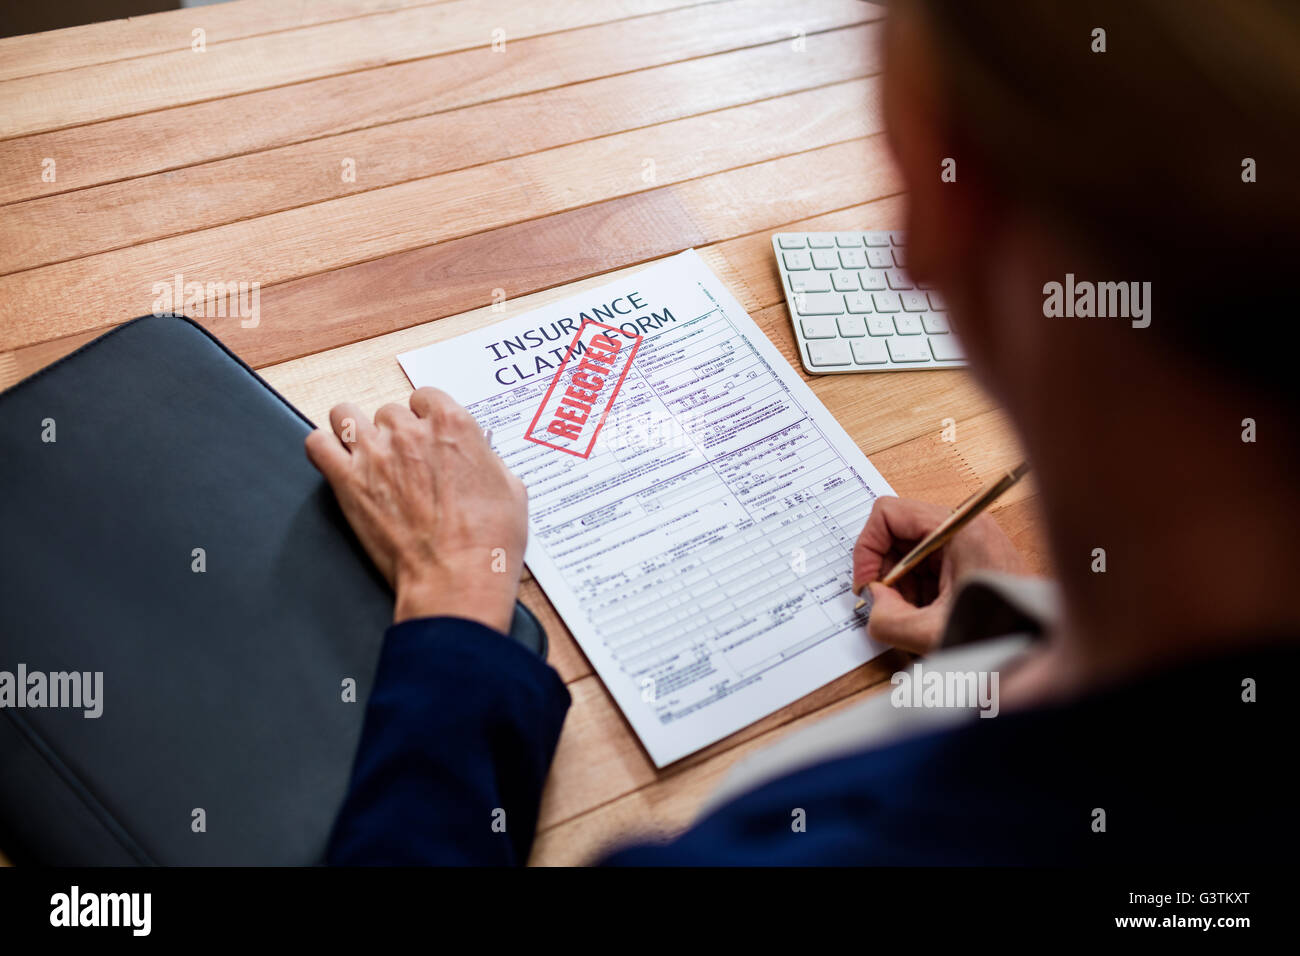 People writing on an insurance claim form - Stock Image